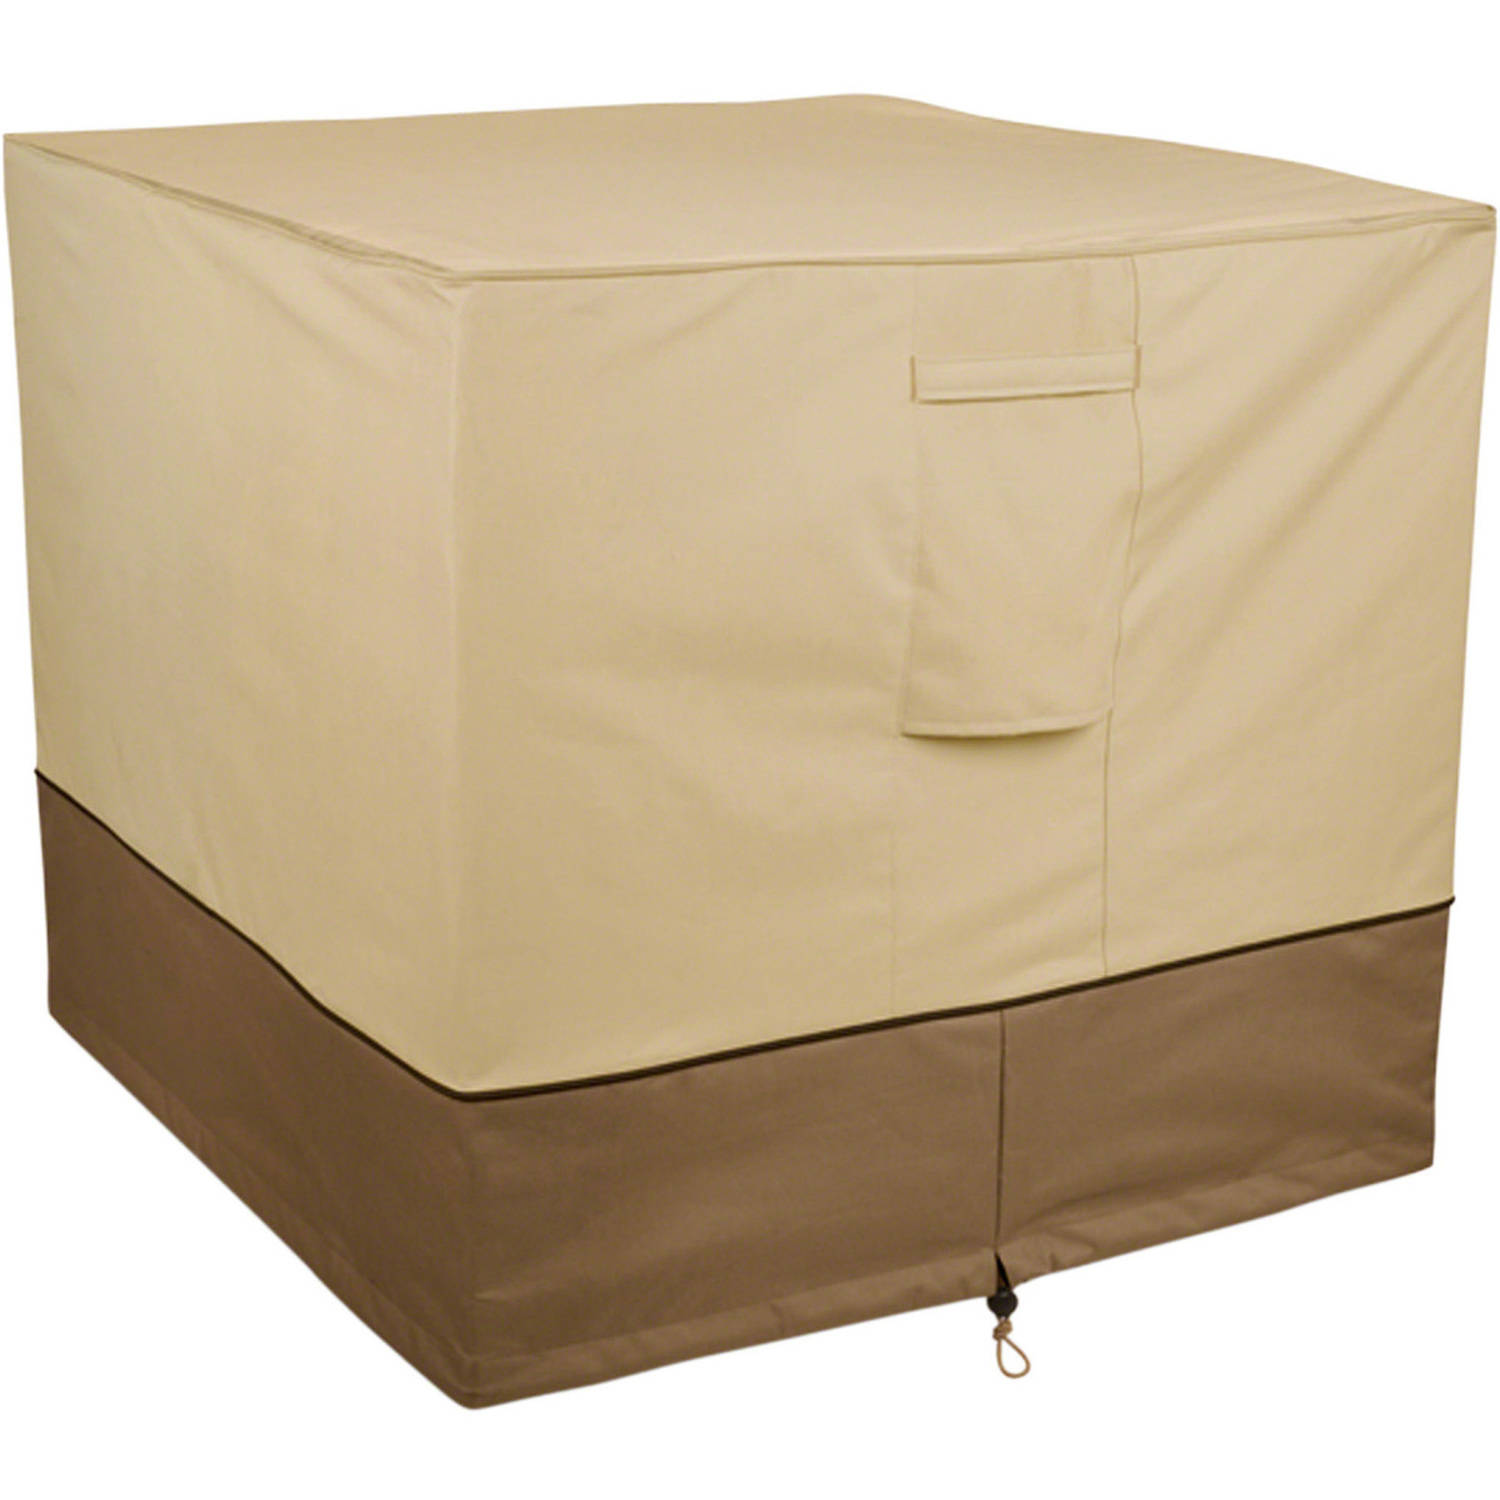 Air Conditioning Covers Classic Accessories Veranda Square Patio Air Conditioner Storage Cover Fits Up To 34